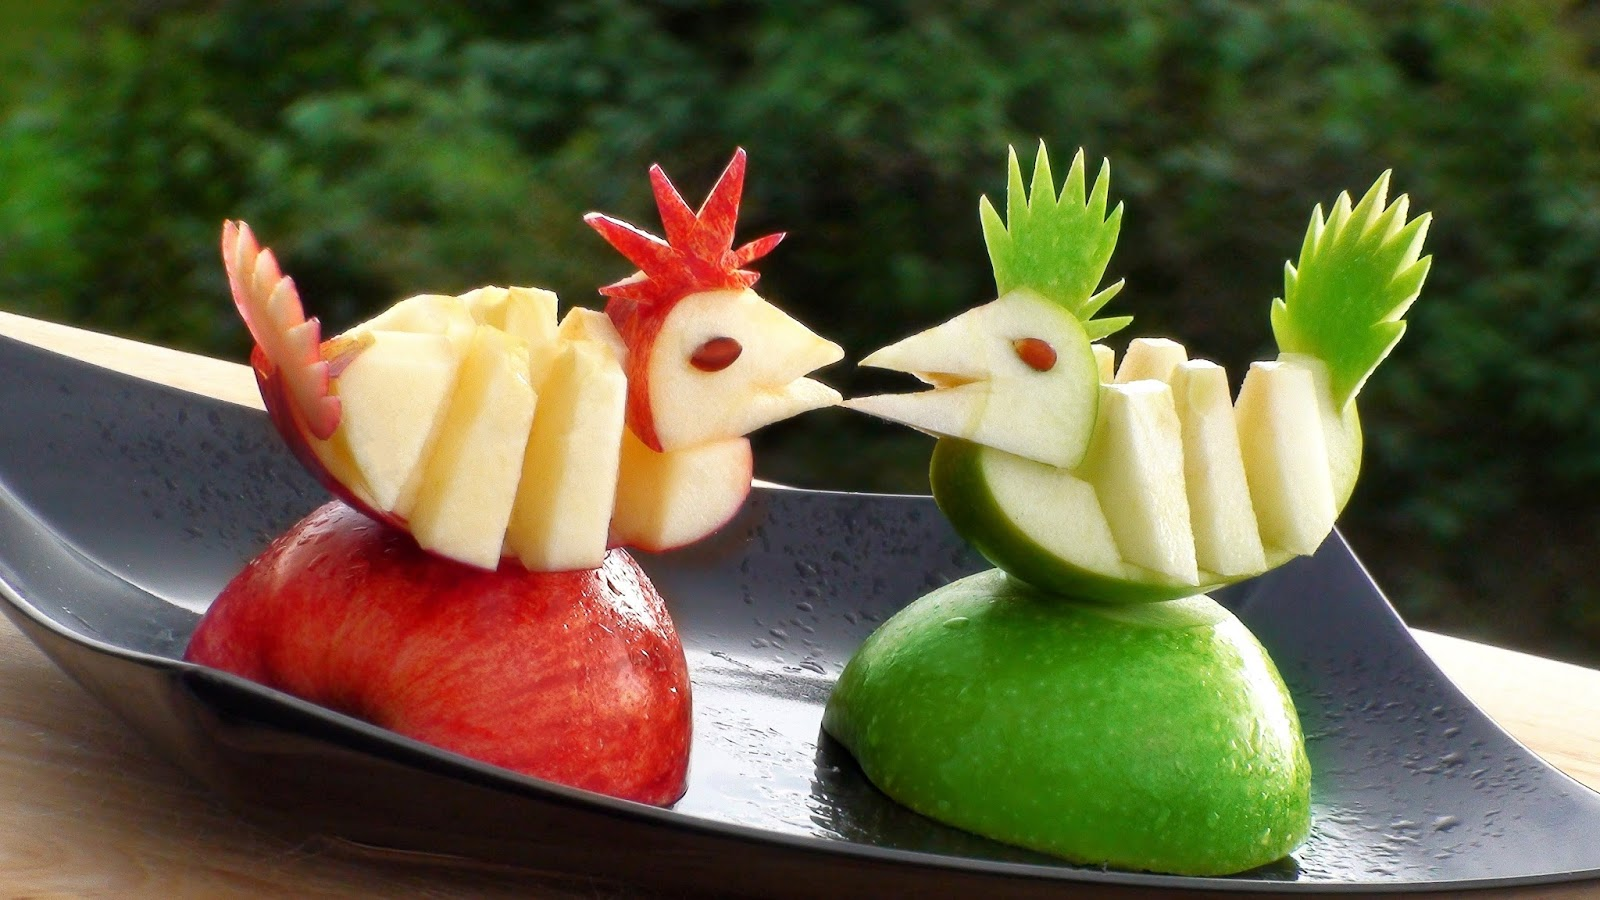 Fruit decoration art craft art ideas for Apples for decoration